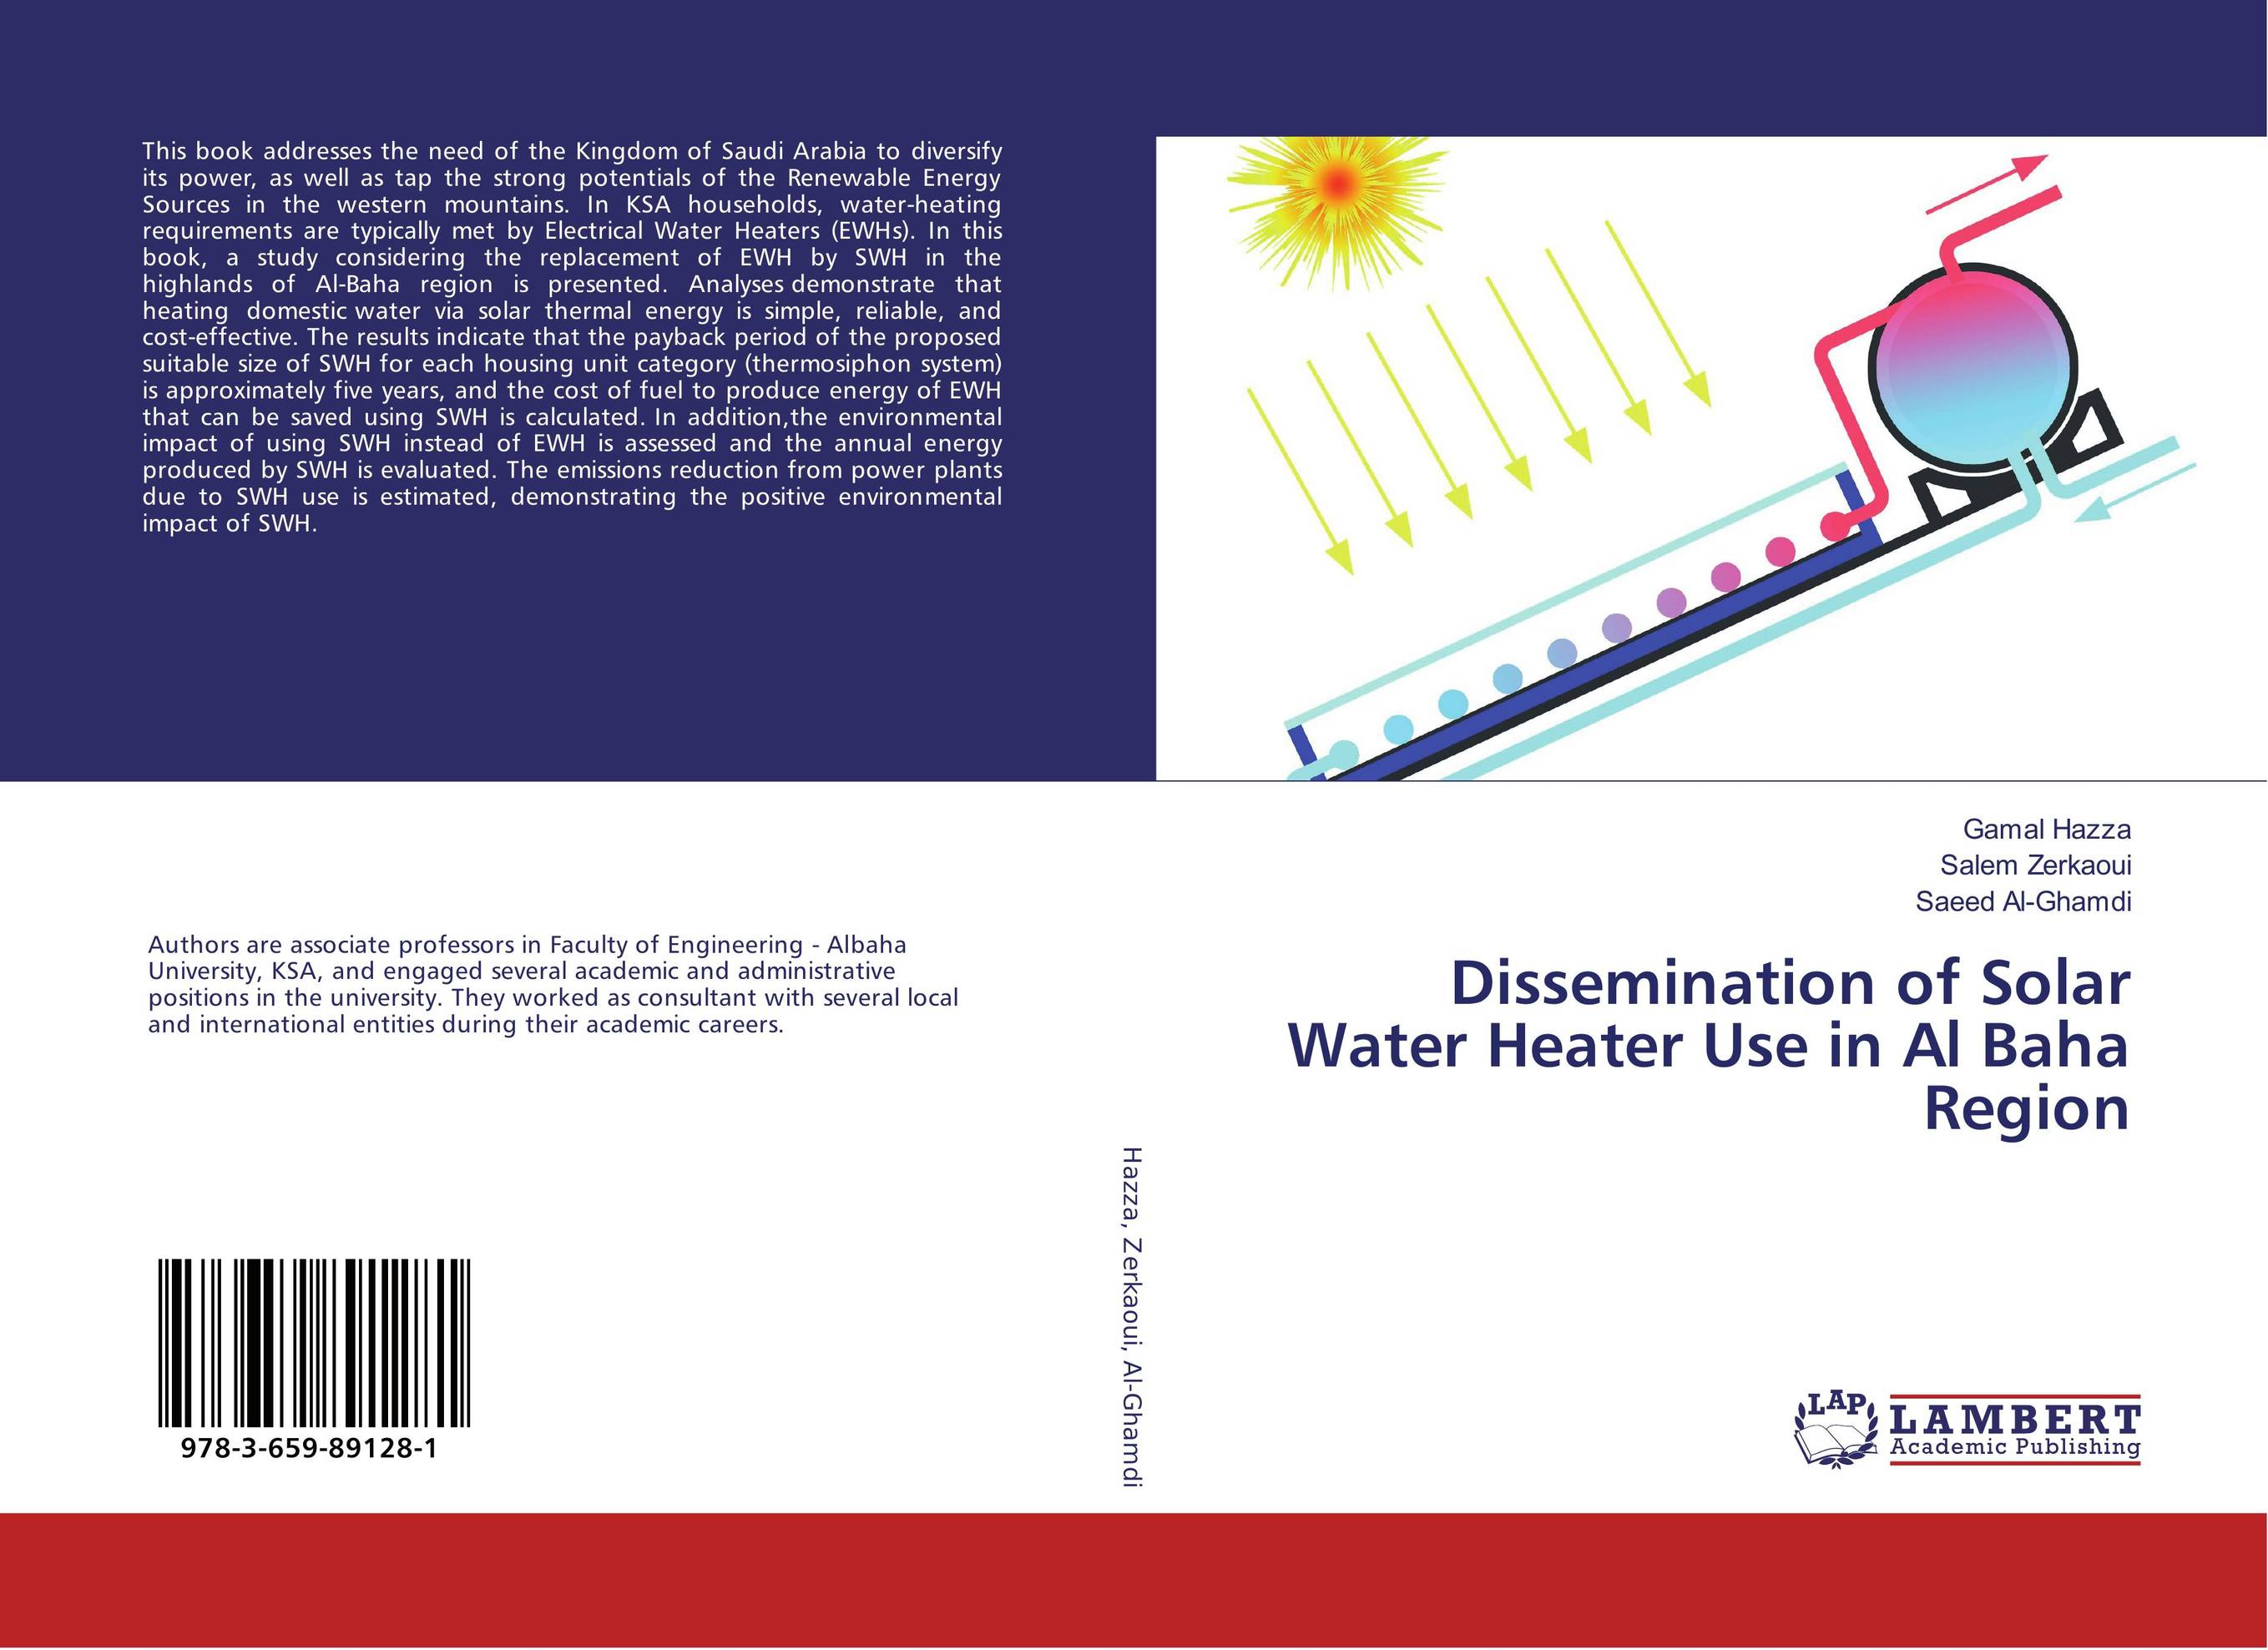 Dissemination of Solar Water Heater Use in Al Baha Region energy conservation and solar energy water heater electric heating tube flange air heating elements quartz glass heater tuebe